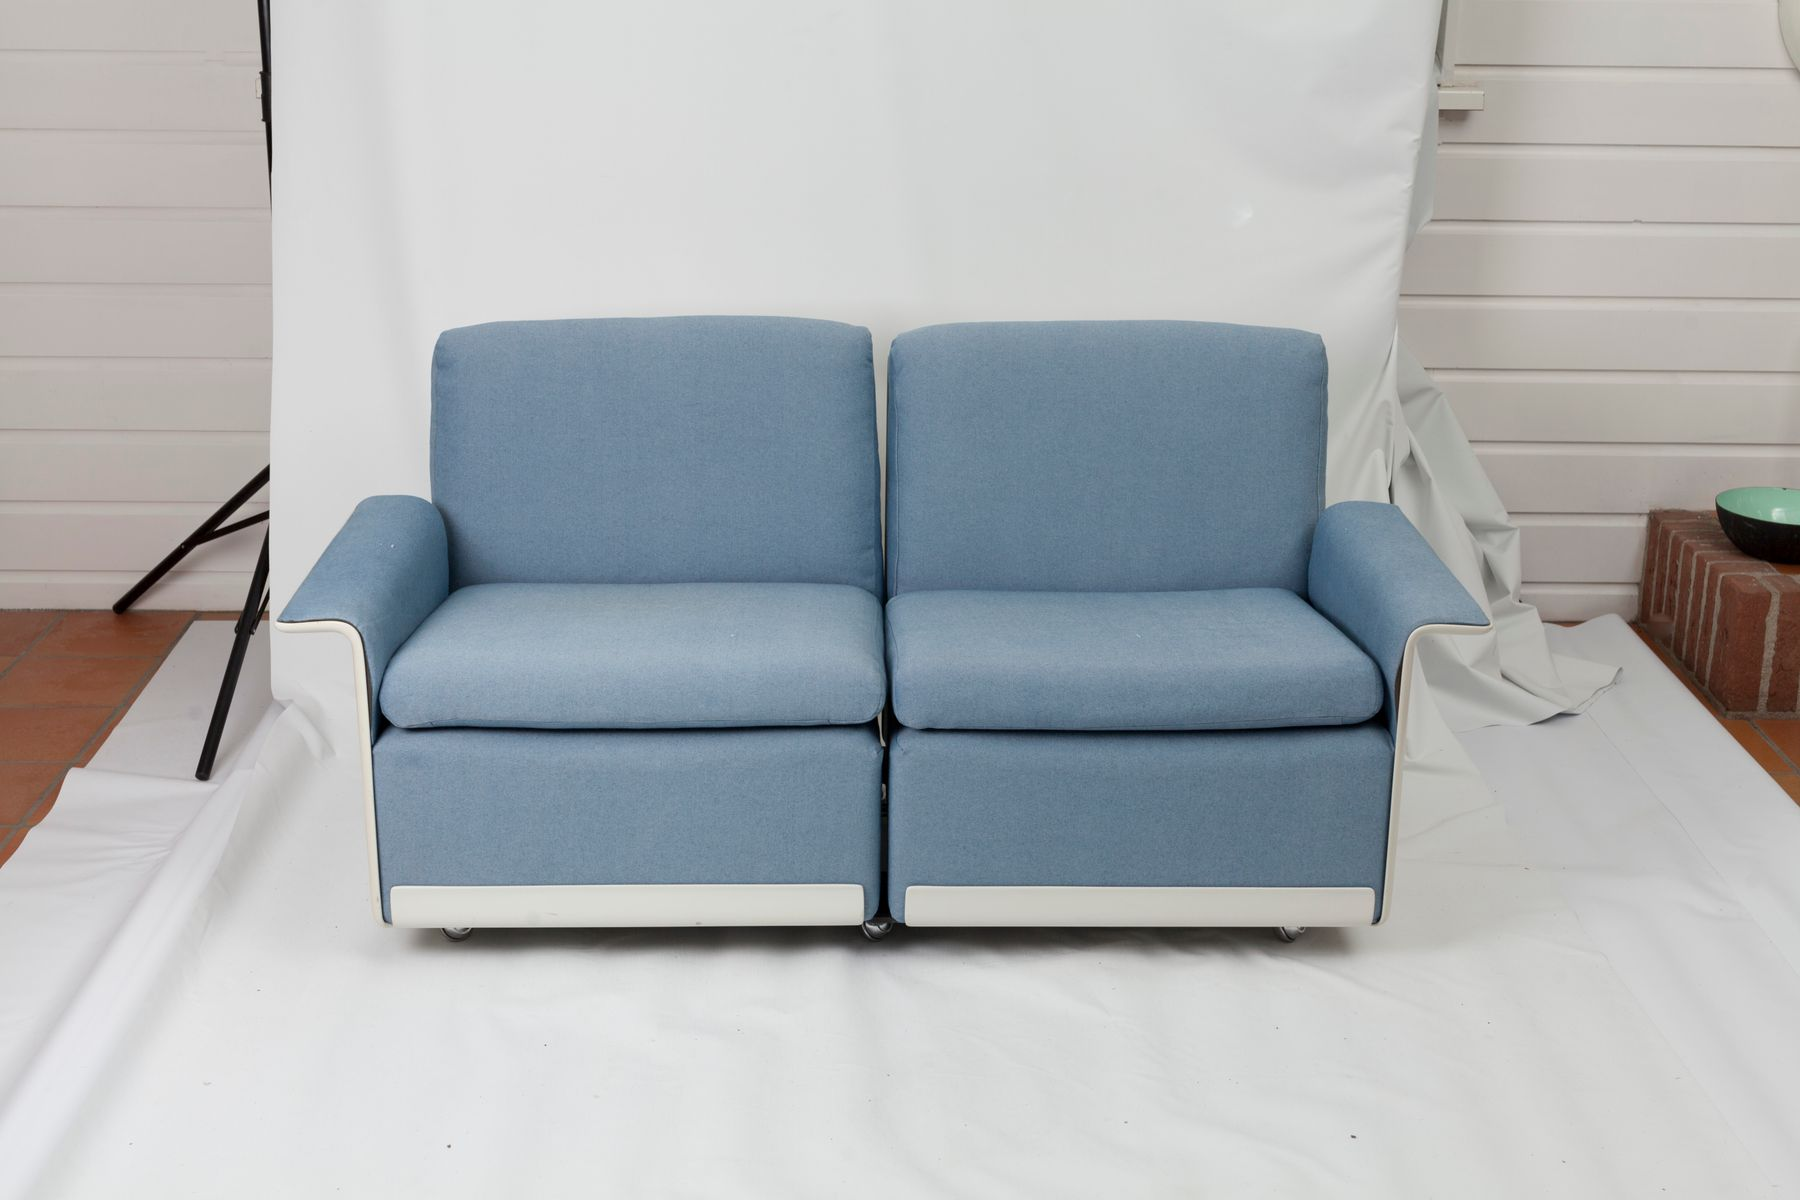 RZ62 Azure & White Modular Sofas by Dieter Rams for Vitsoe 1962